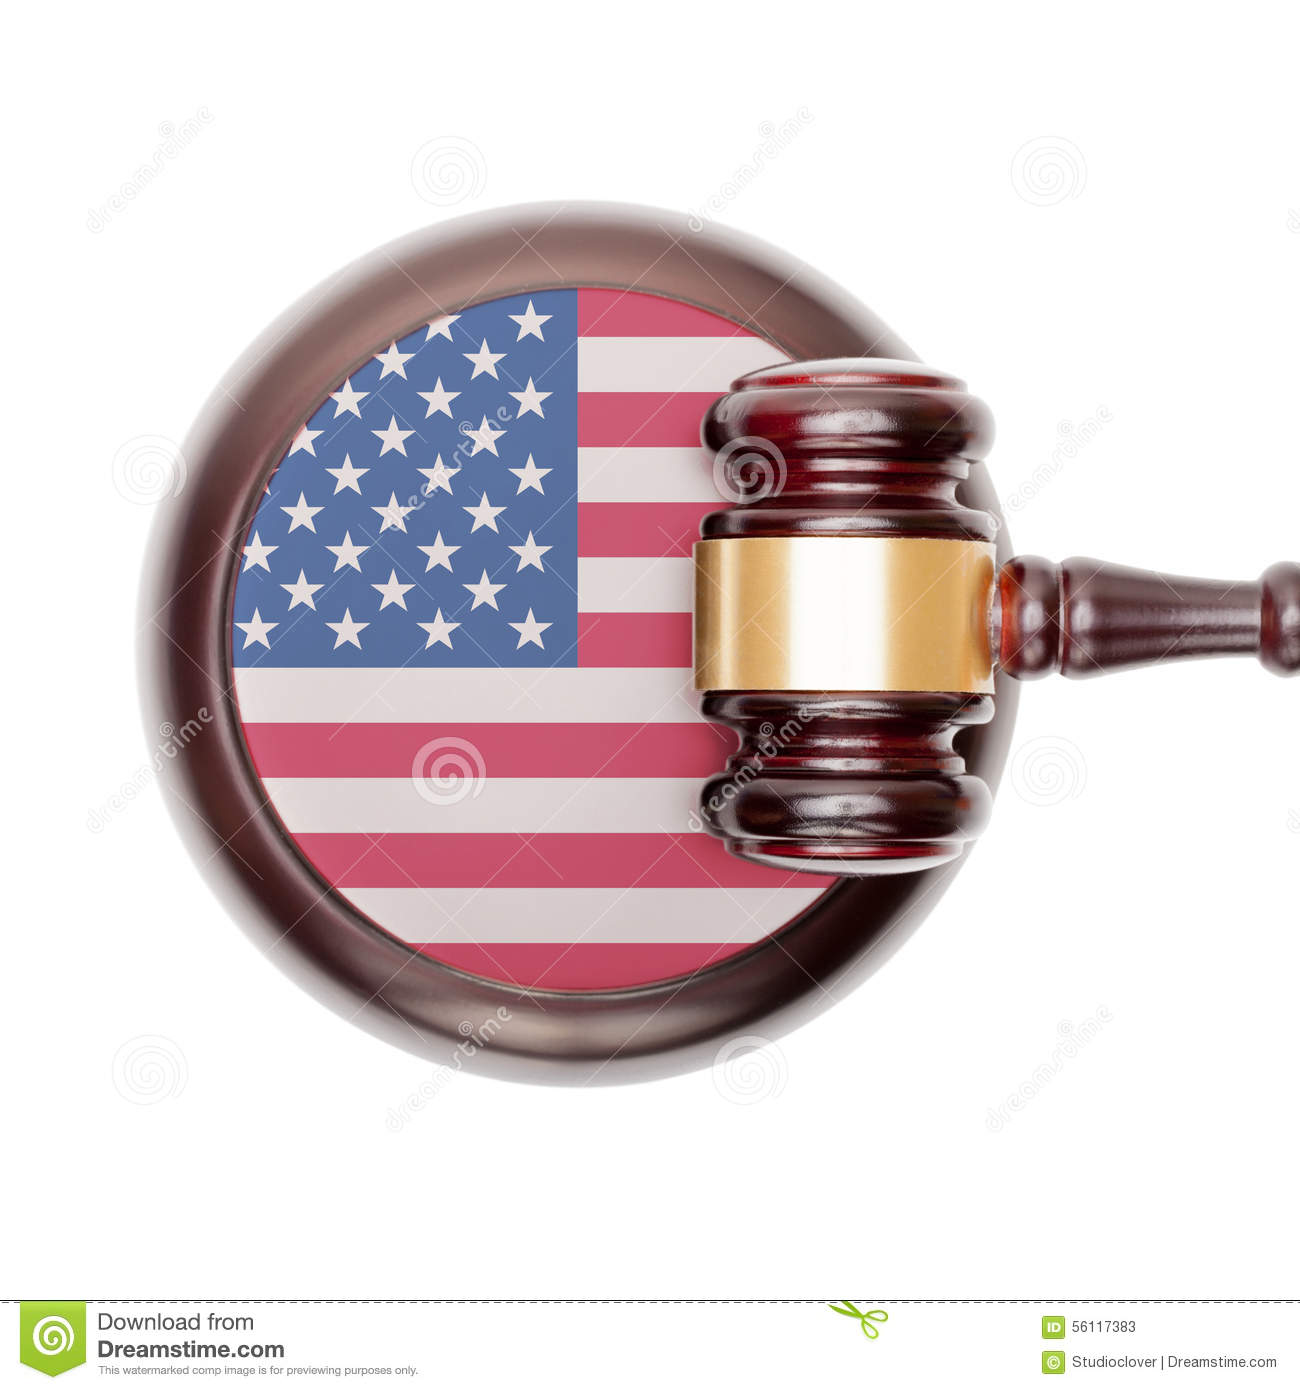 National legal system conceptual series - United States